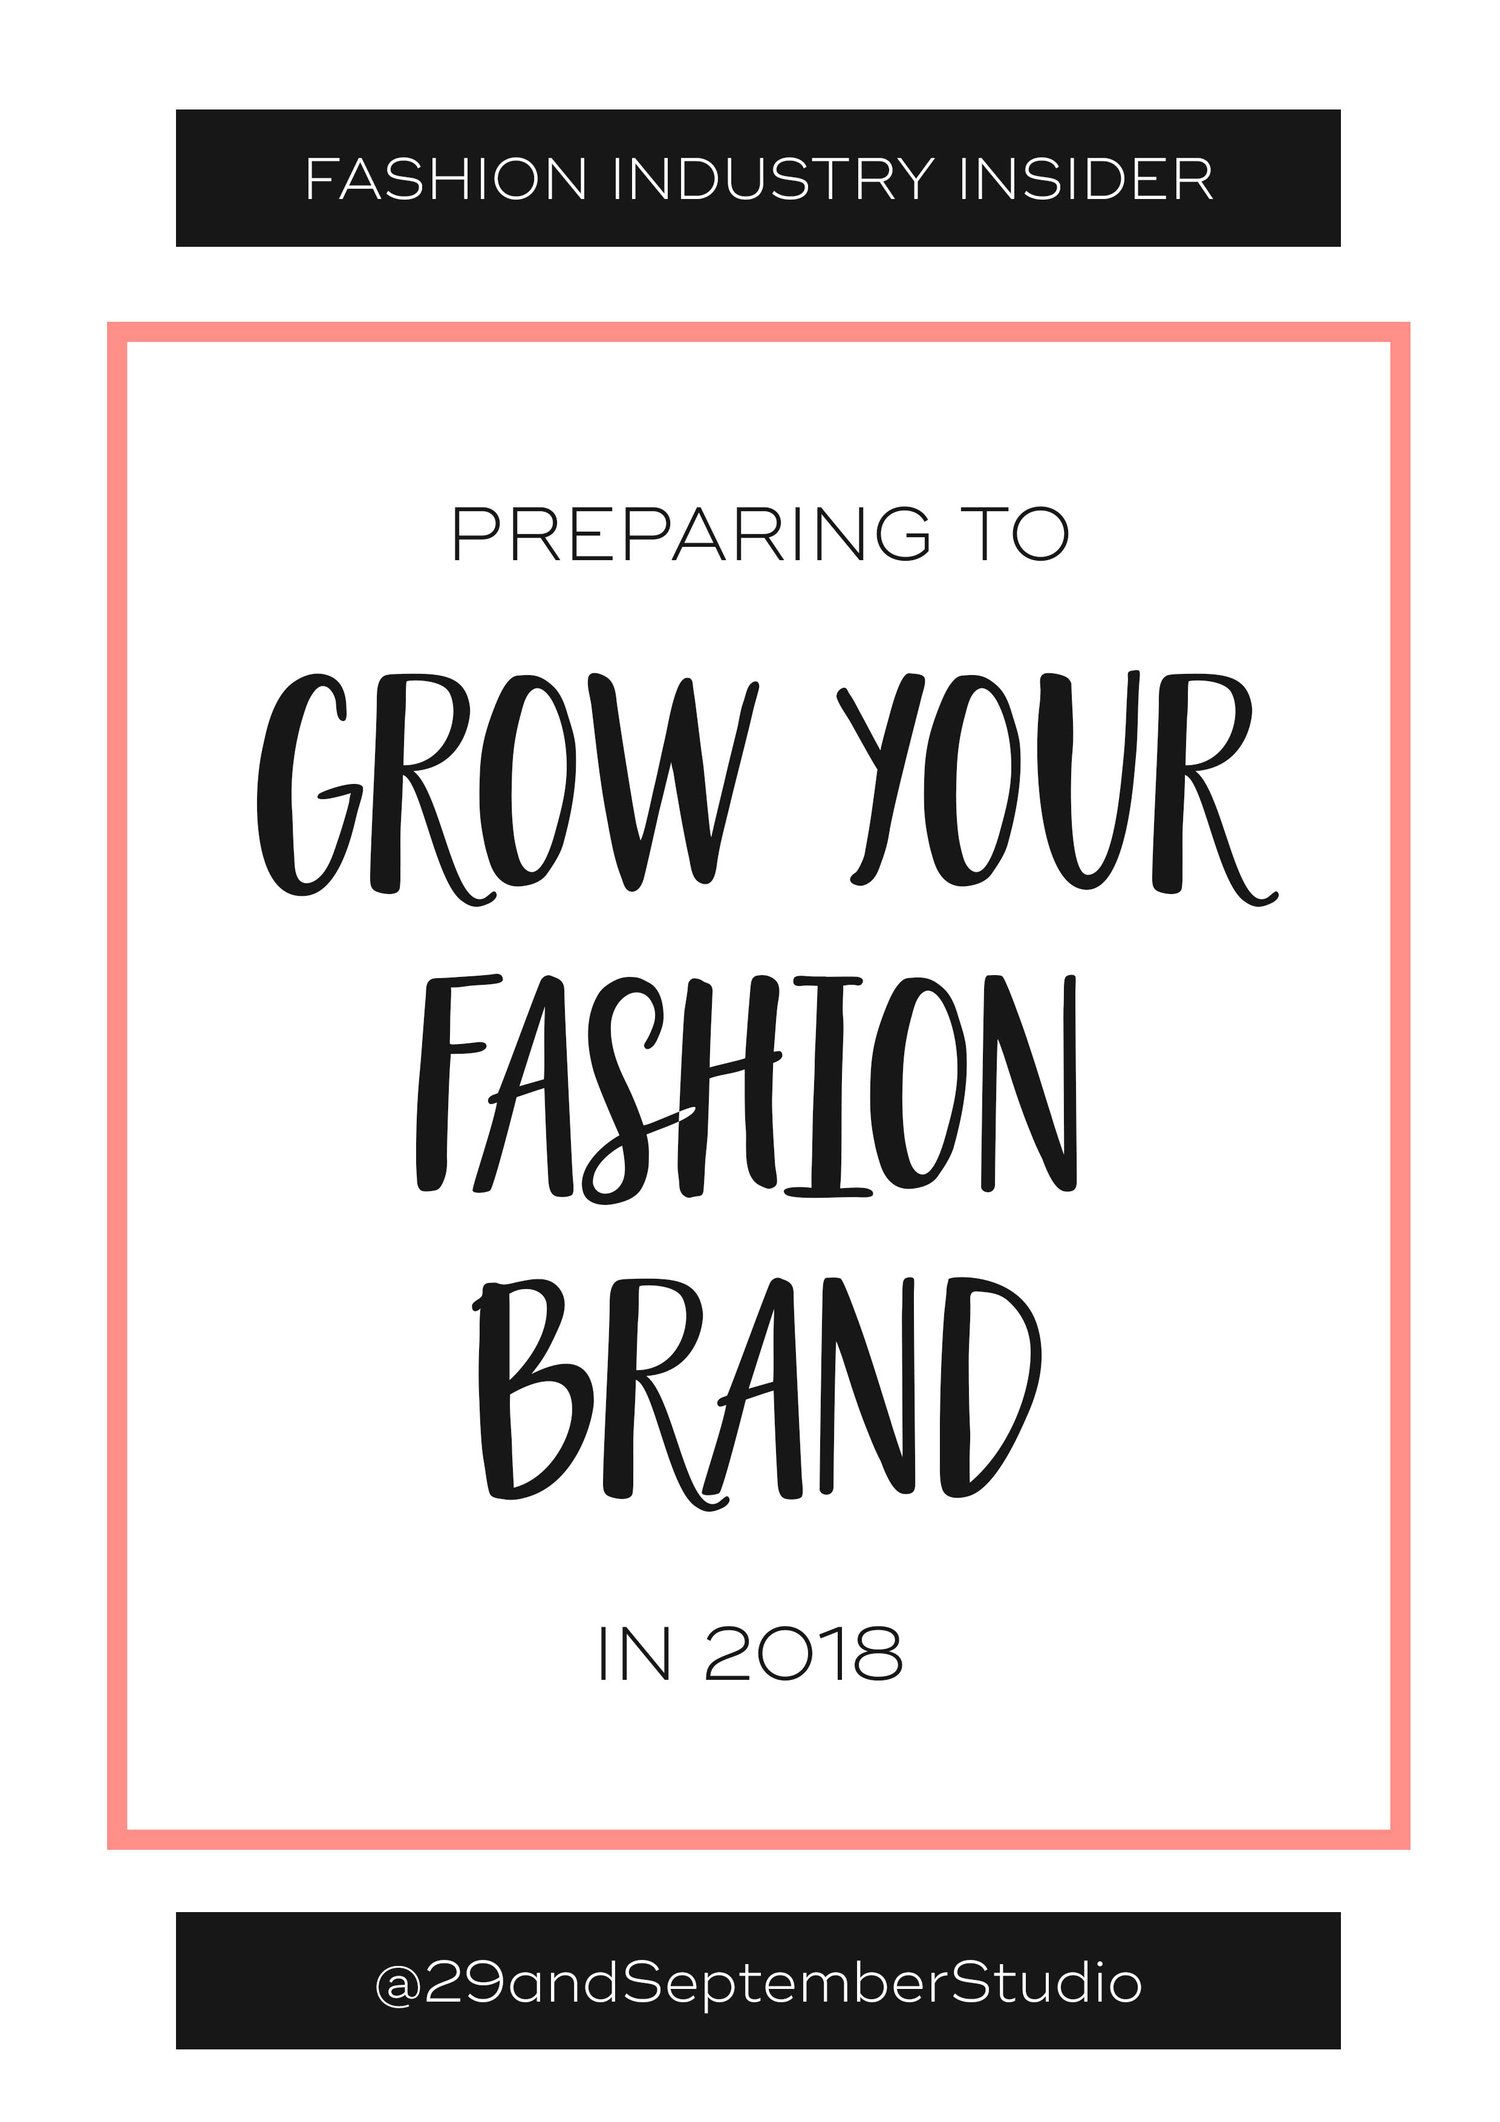 How To Prepare To Grow Your Fashion Brand In 2018 Fashion Design Business Plan How To Build A F Business Fashion Fashion Business Plan Entrepreneur Fashion